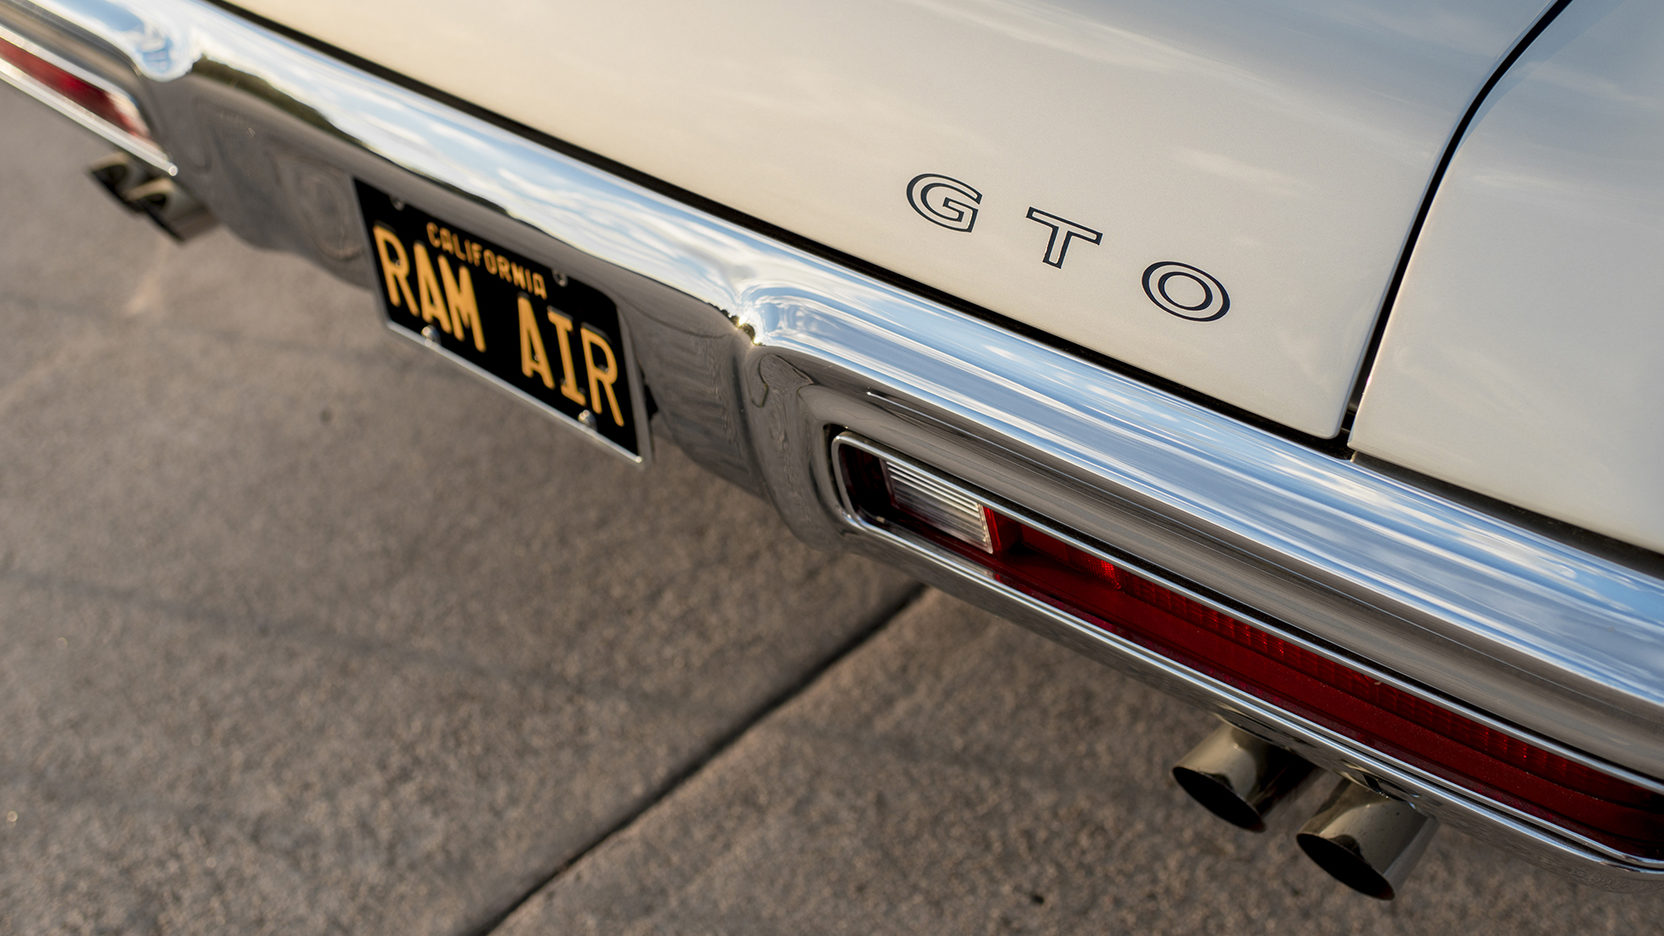 1970 Pontiac GTO Ram Air IV rear bumper detail